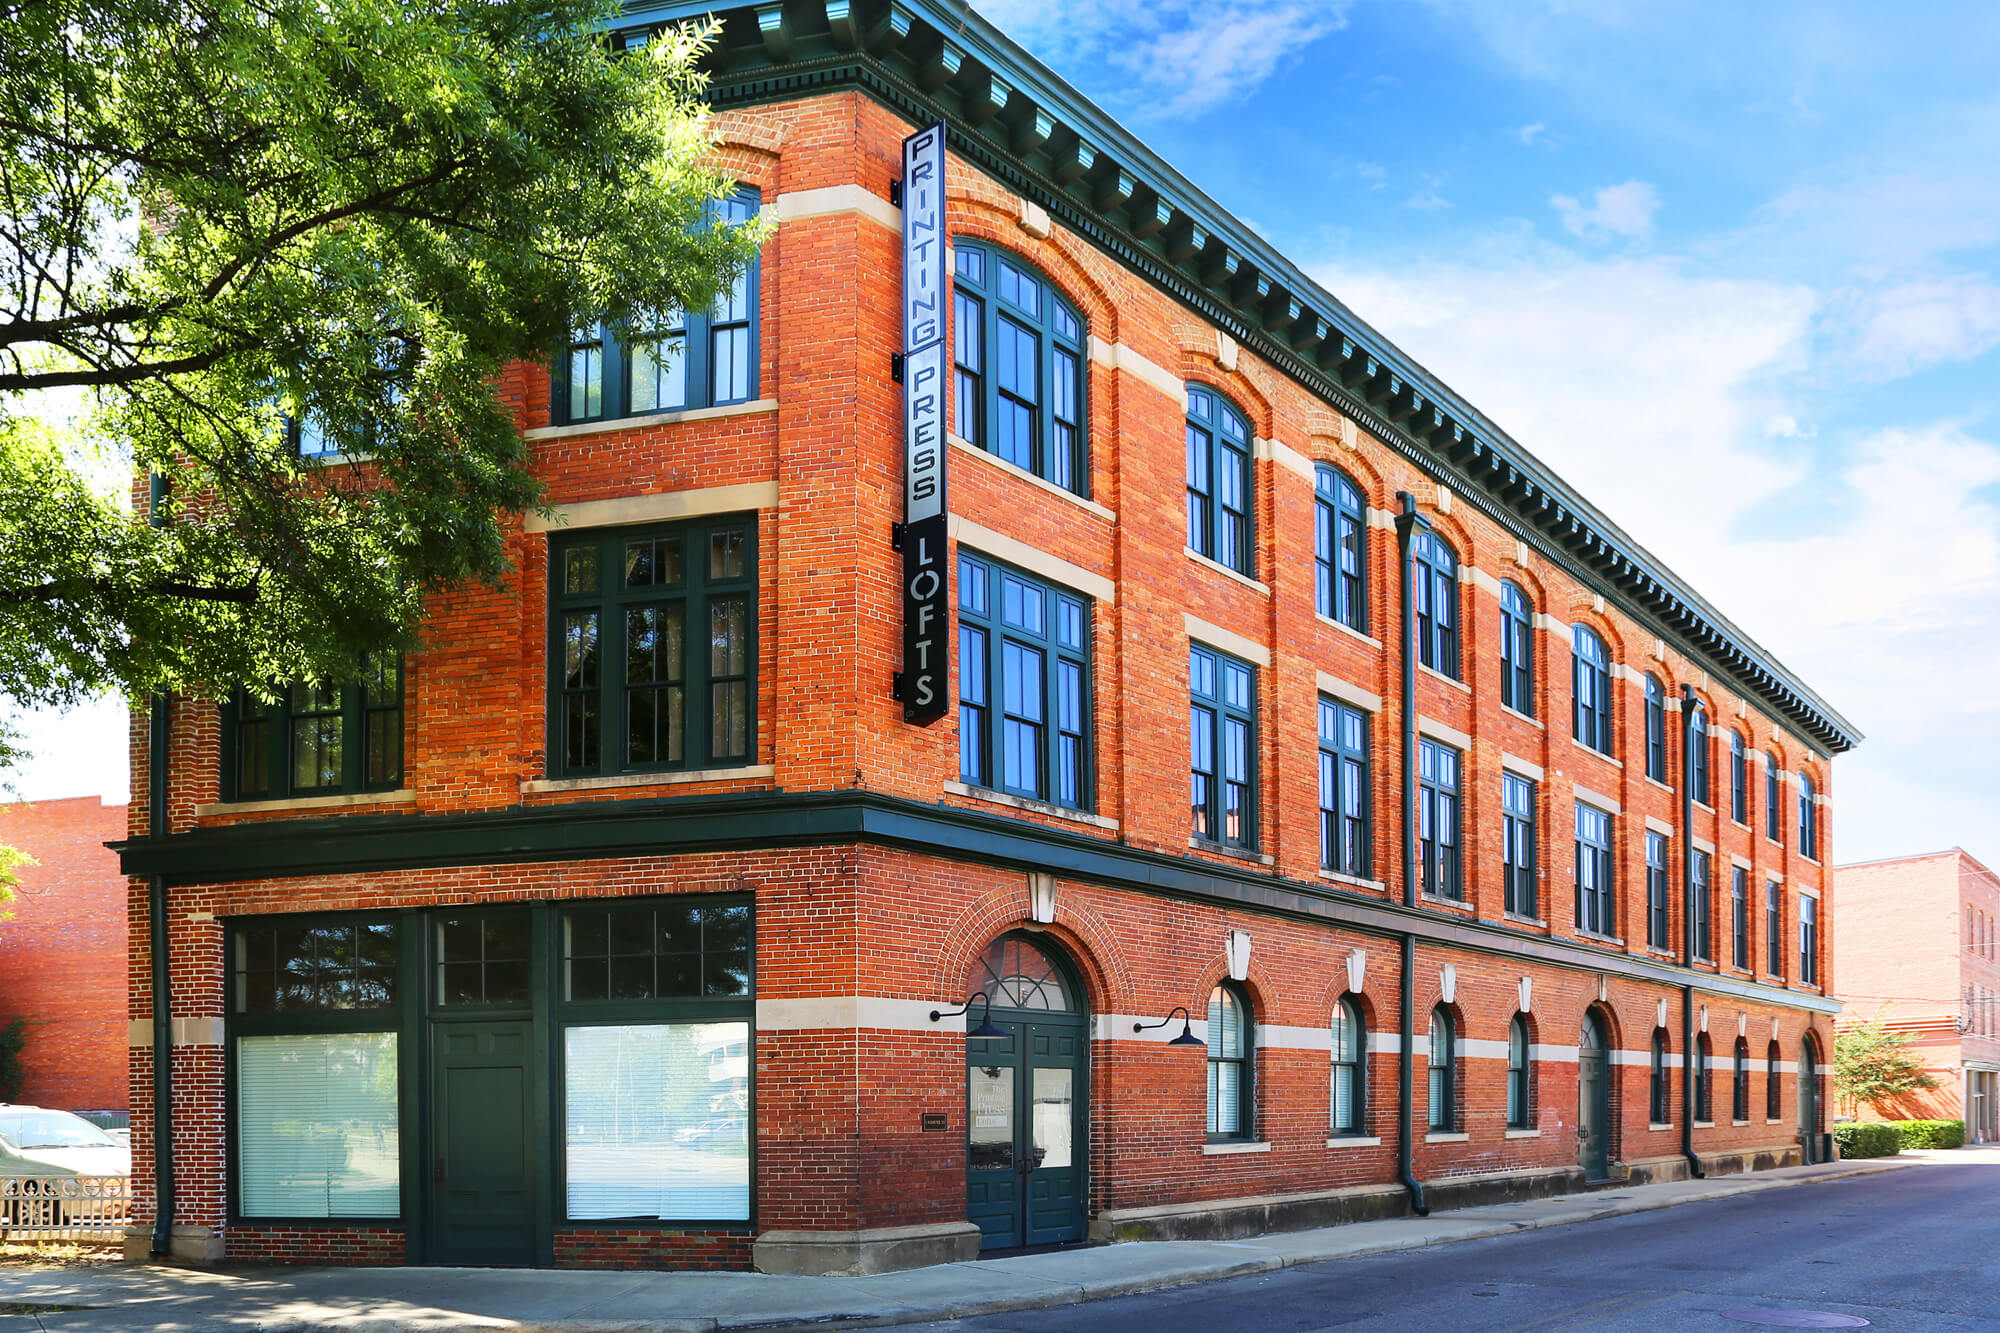 Printing Press Lofts Designed by Foshee Architecture – View of the Exterior